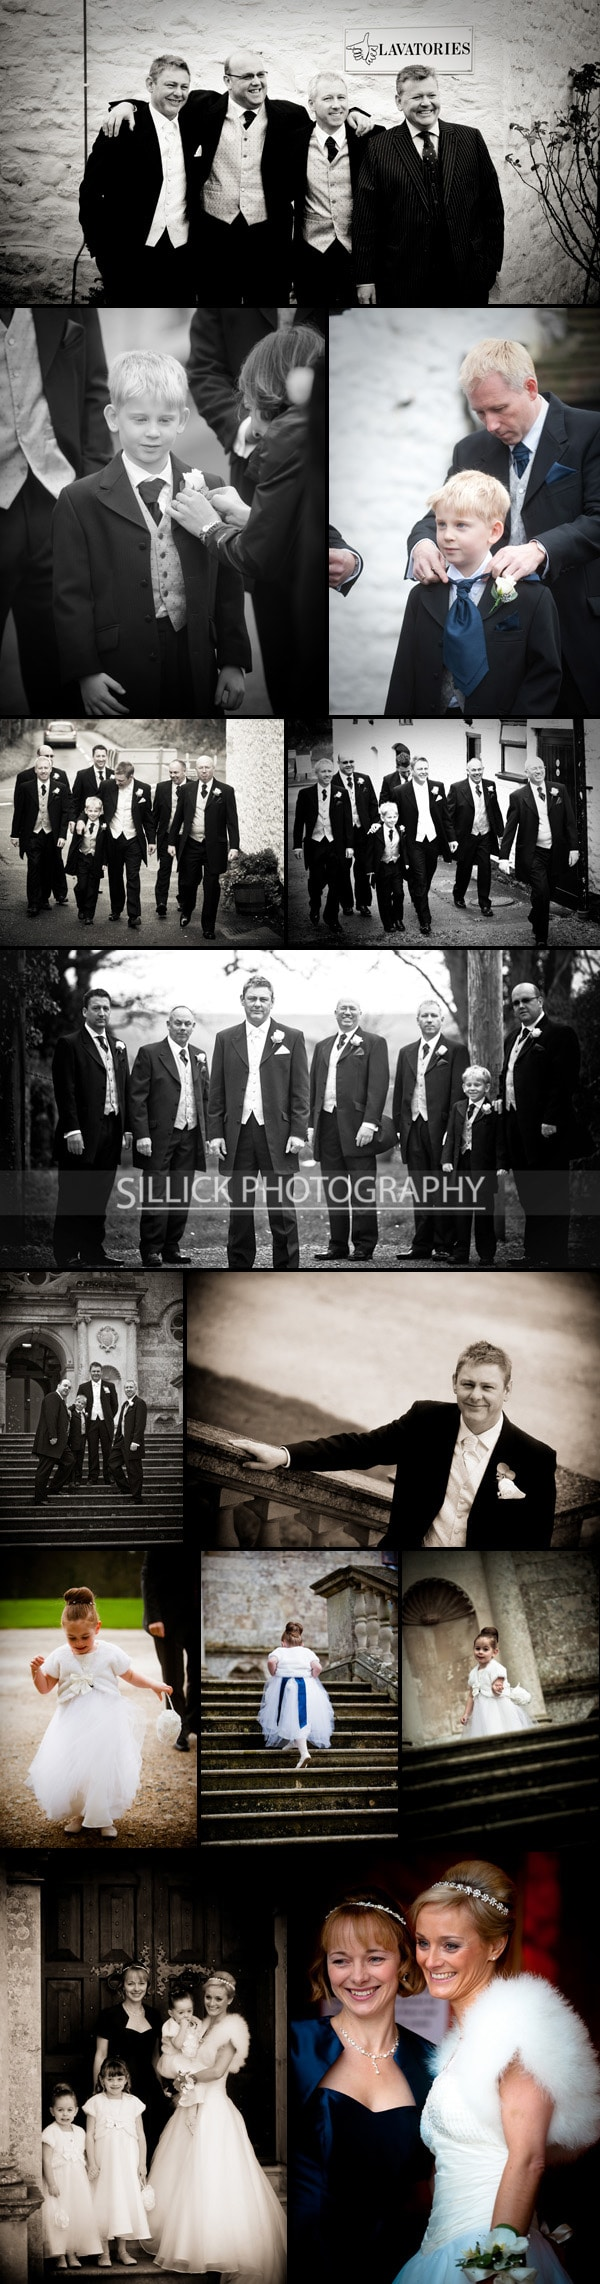 Sillick Photography _ Dorset Wedding Photographer